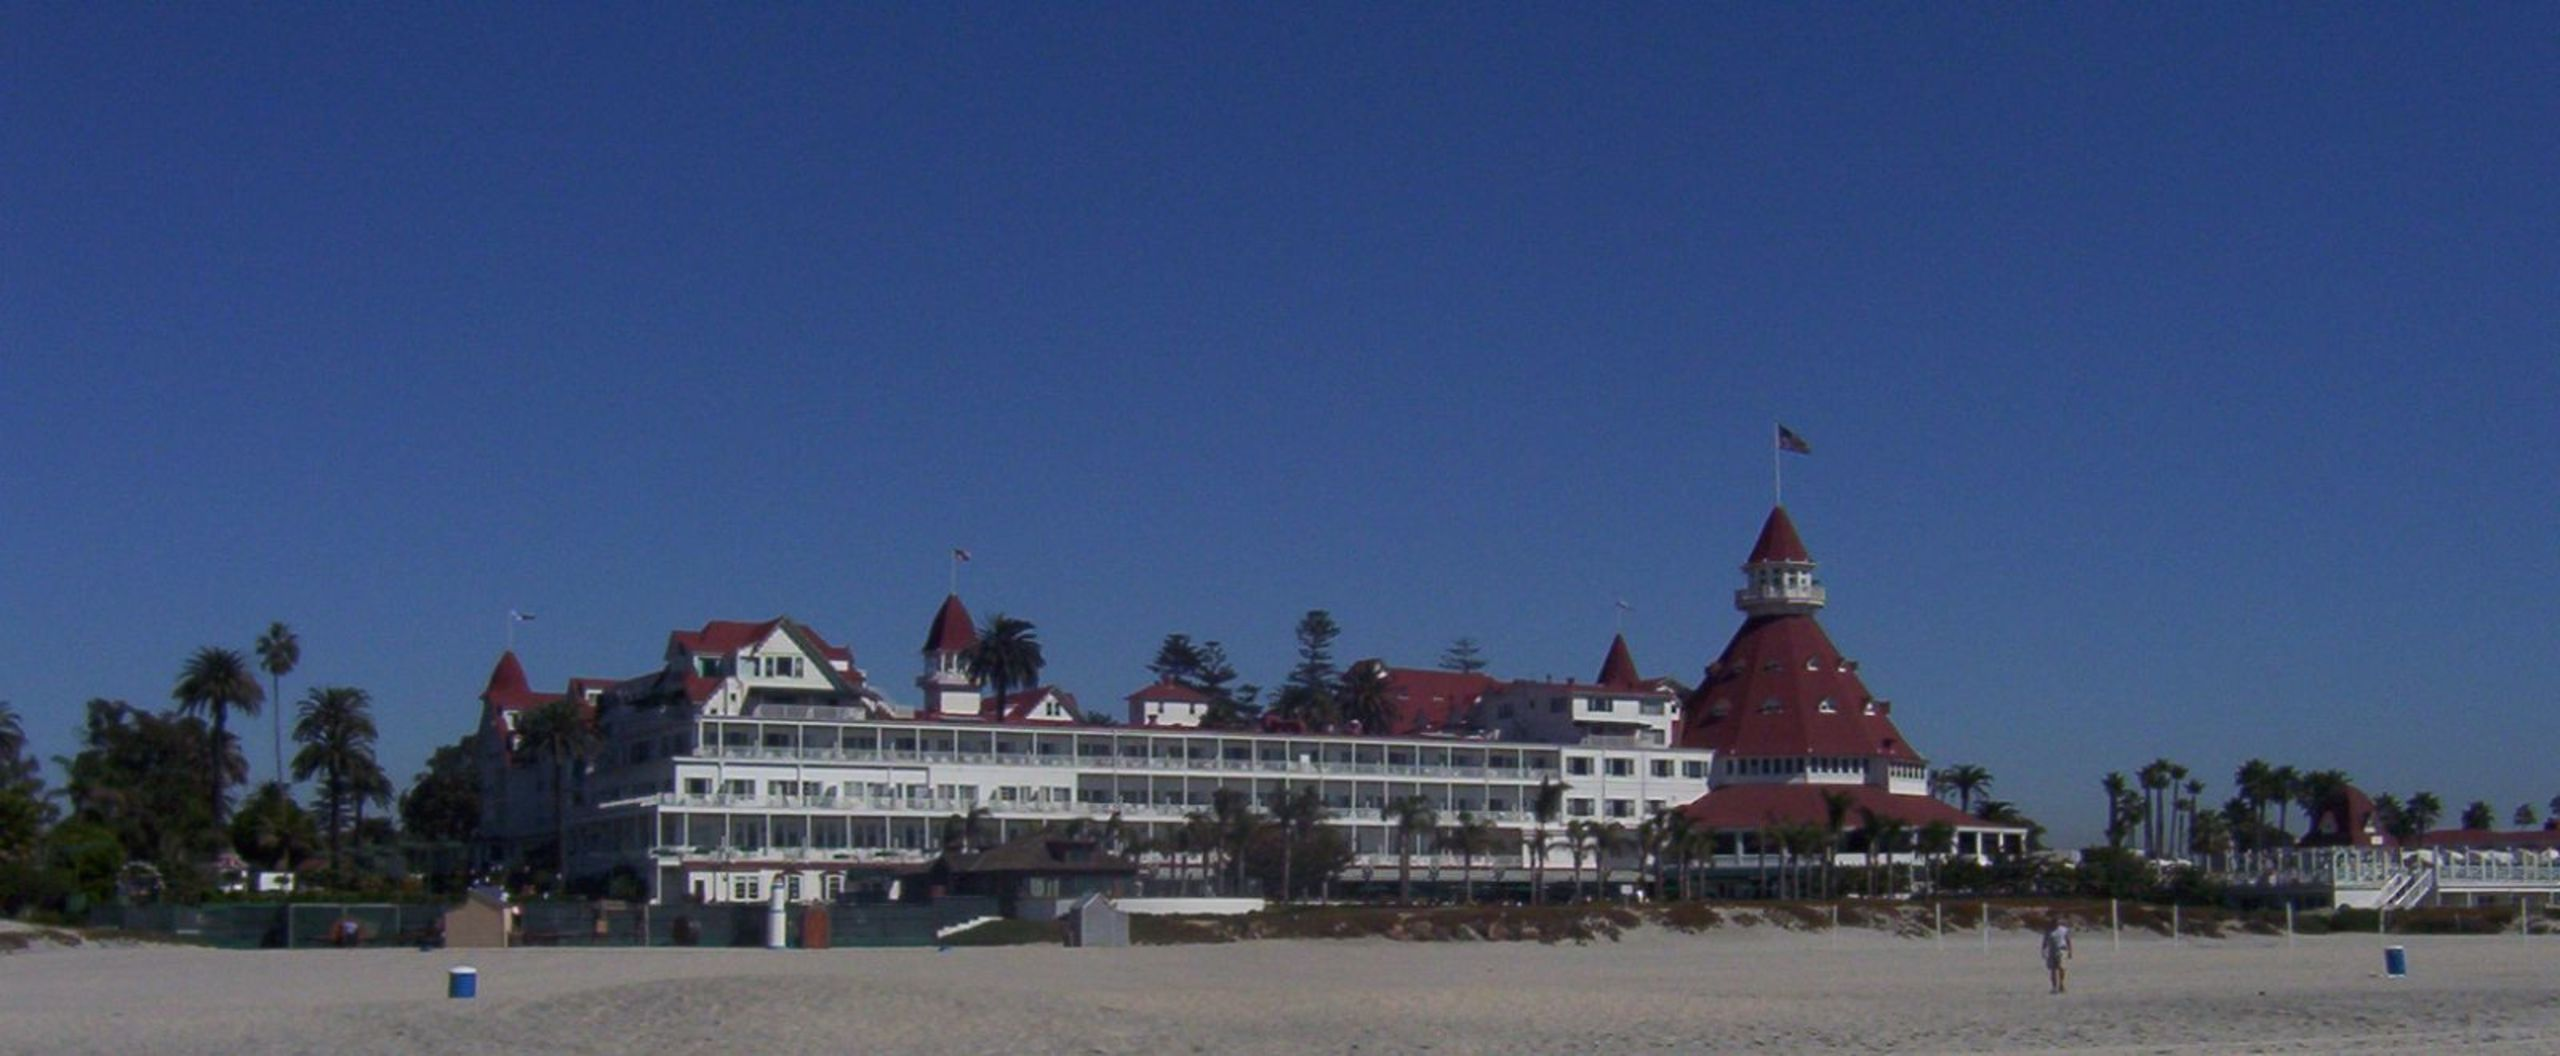 Hotel Del Coronado is a place to see and enjoy...